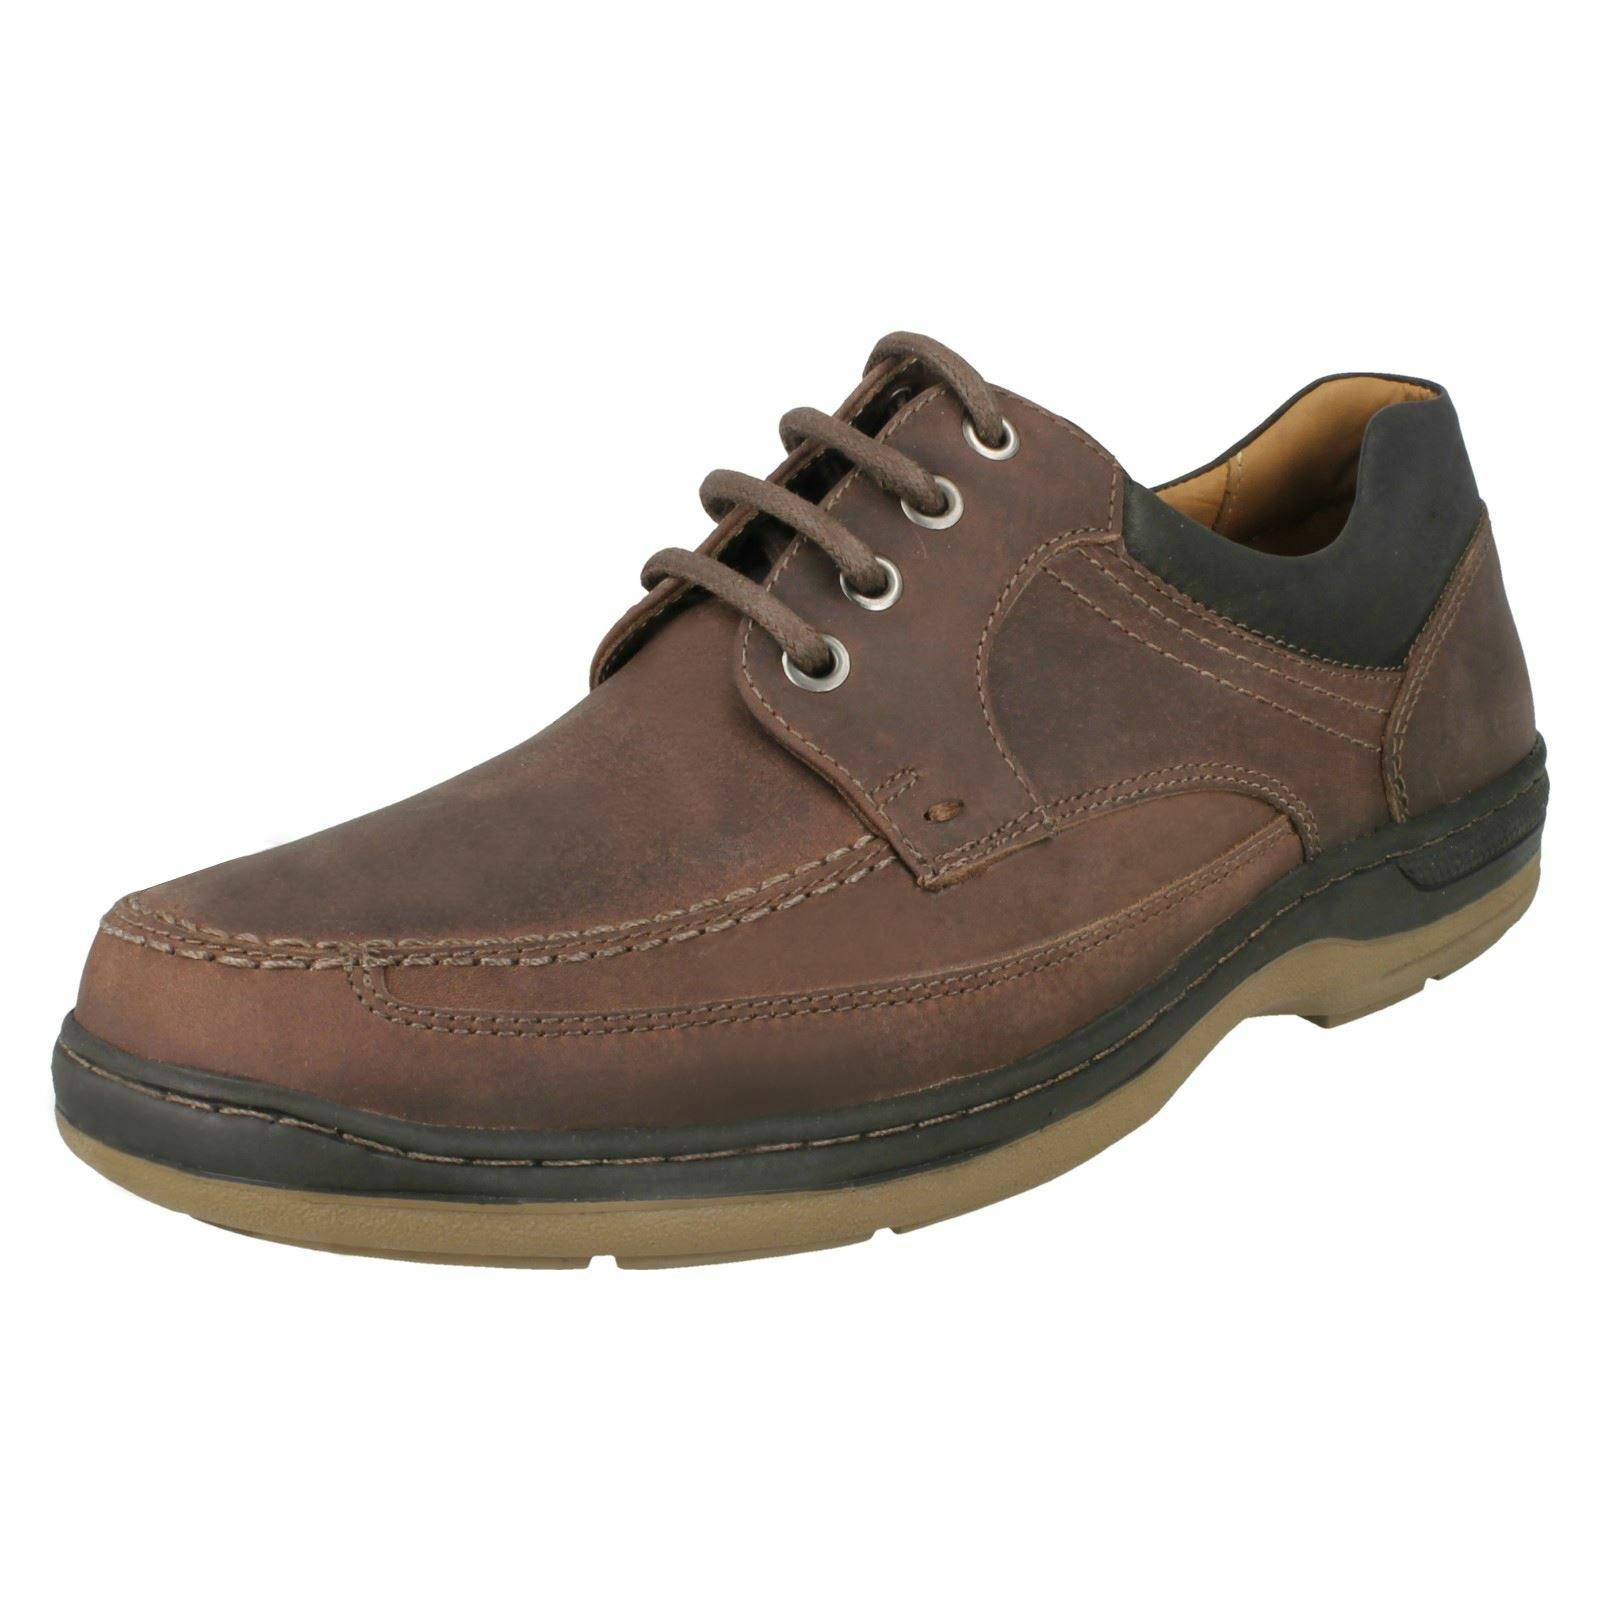 Herren Anatomic Anatomic Anatomic Braun waxed Leder Lace Up Schuhes Gurupi c7e2cd